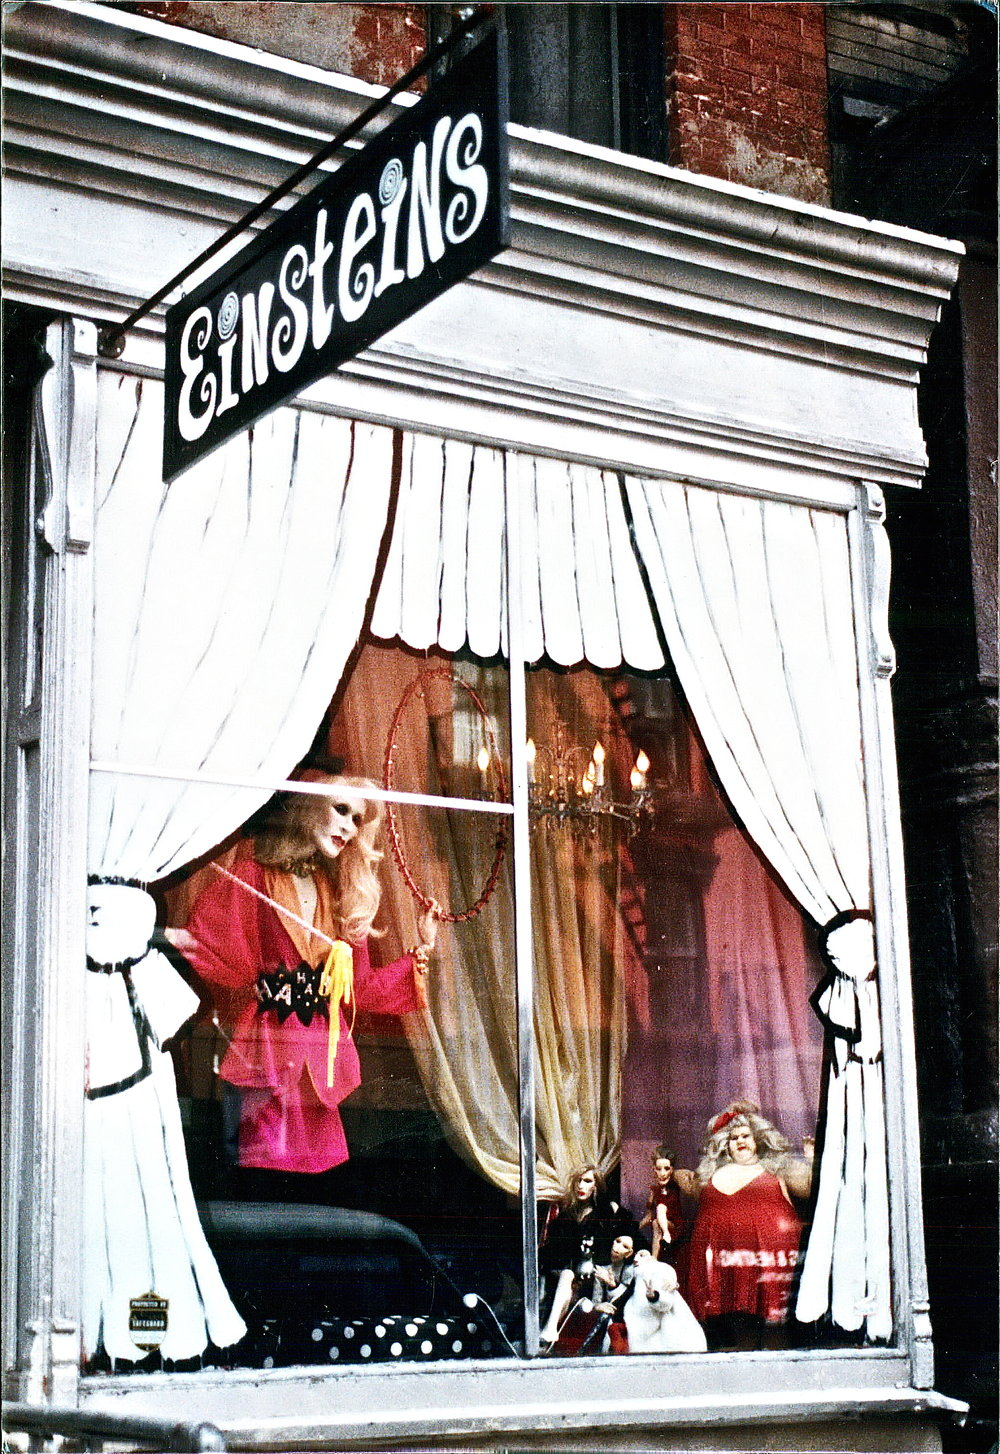 "Einsteins ""Circus"" window display by Greer Lankton and Paul Monroe, dolls and photo by Greer Lankton, 1986. Courtesy Paul Monroe for Greer Lankton Archives Museum"